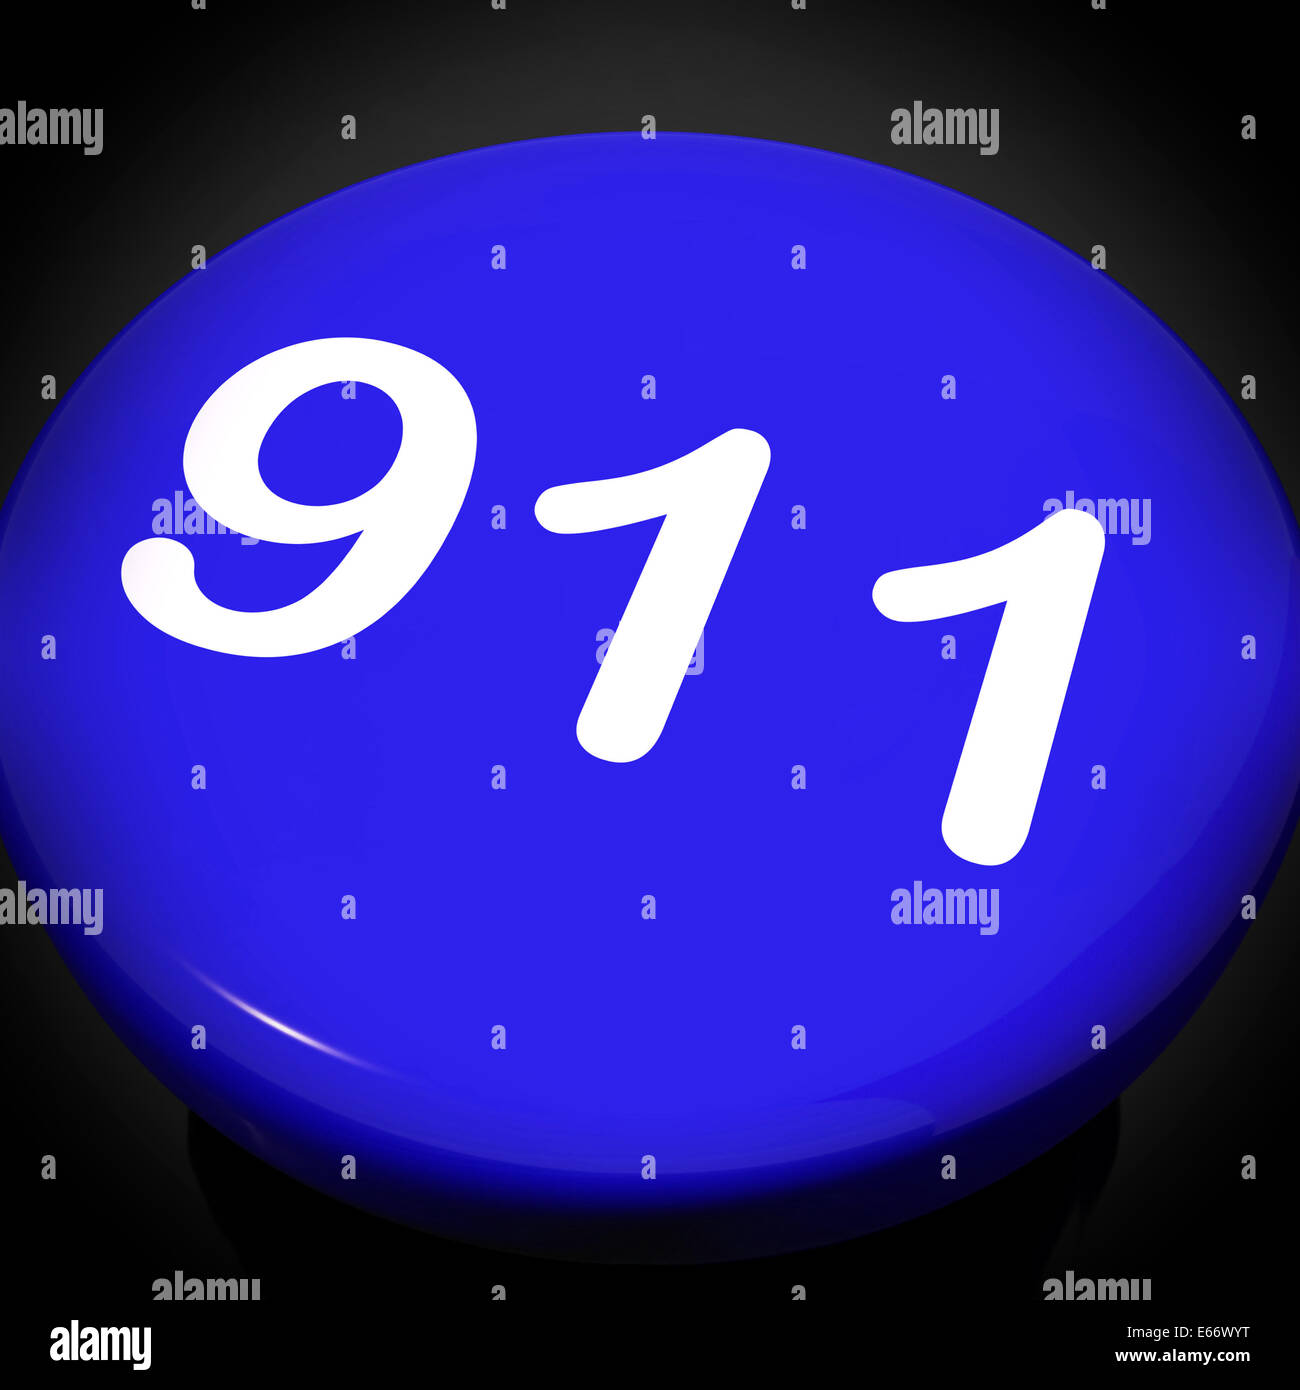 786e2bfa98d345 Nine One Switch Showing Call Emergency Help Rescue 911 Stock Photo ...